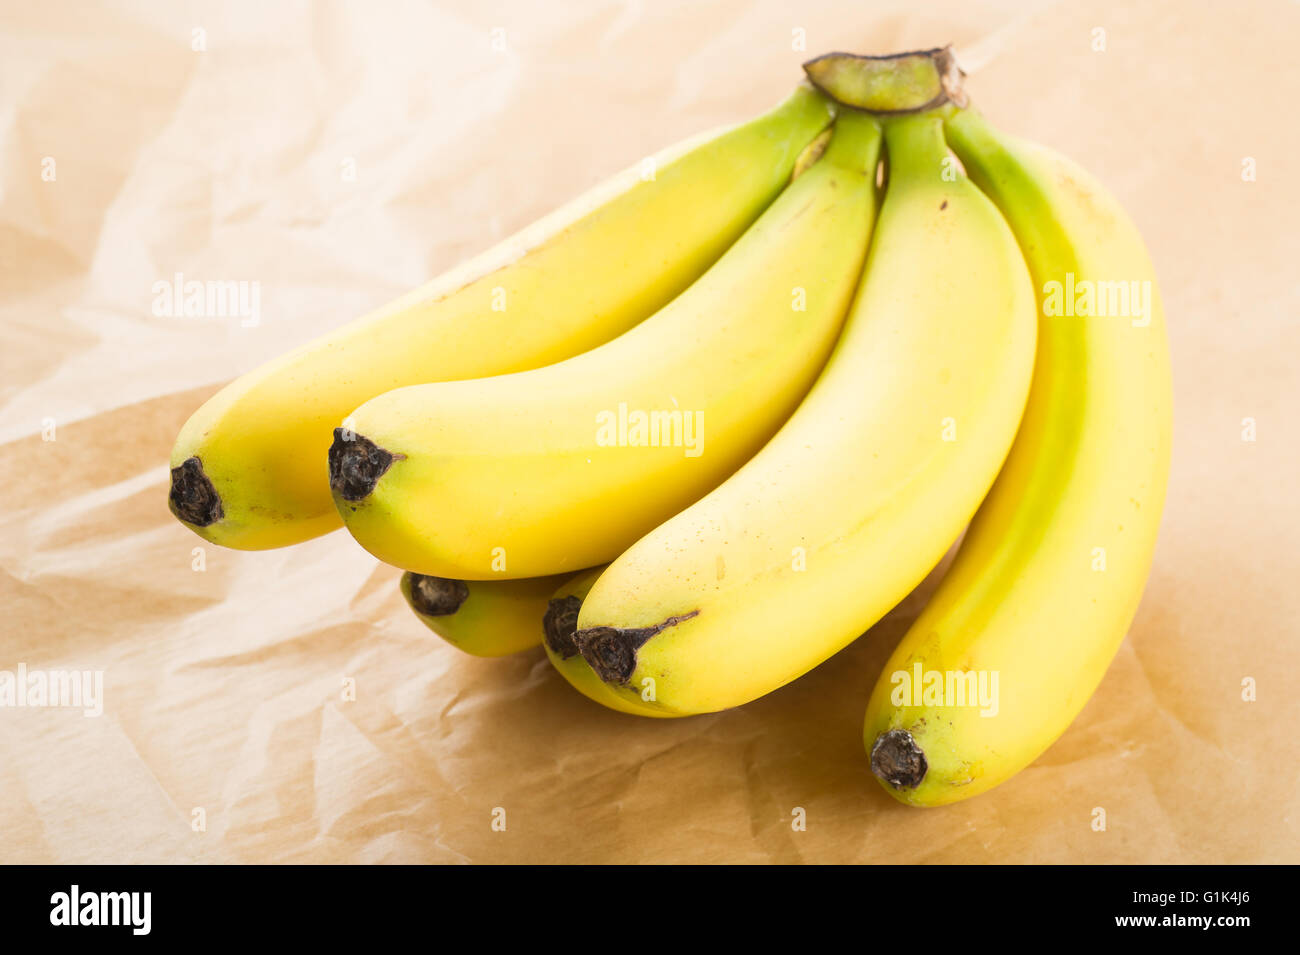 Fresh organic bananas - Stock Image